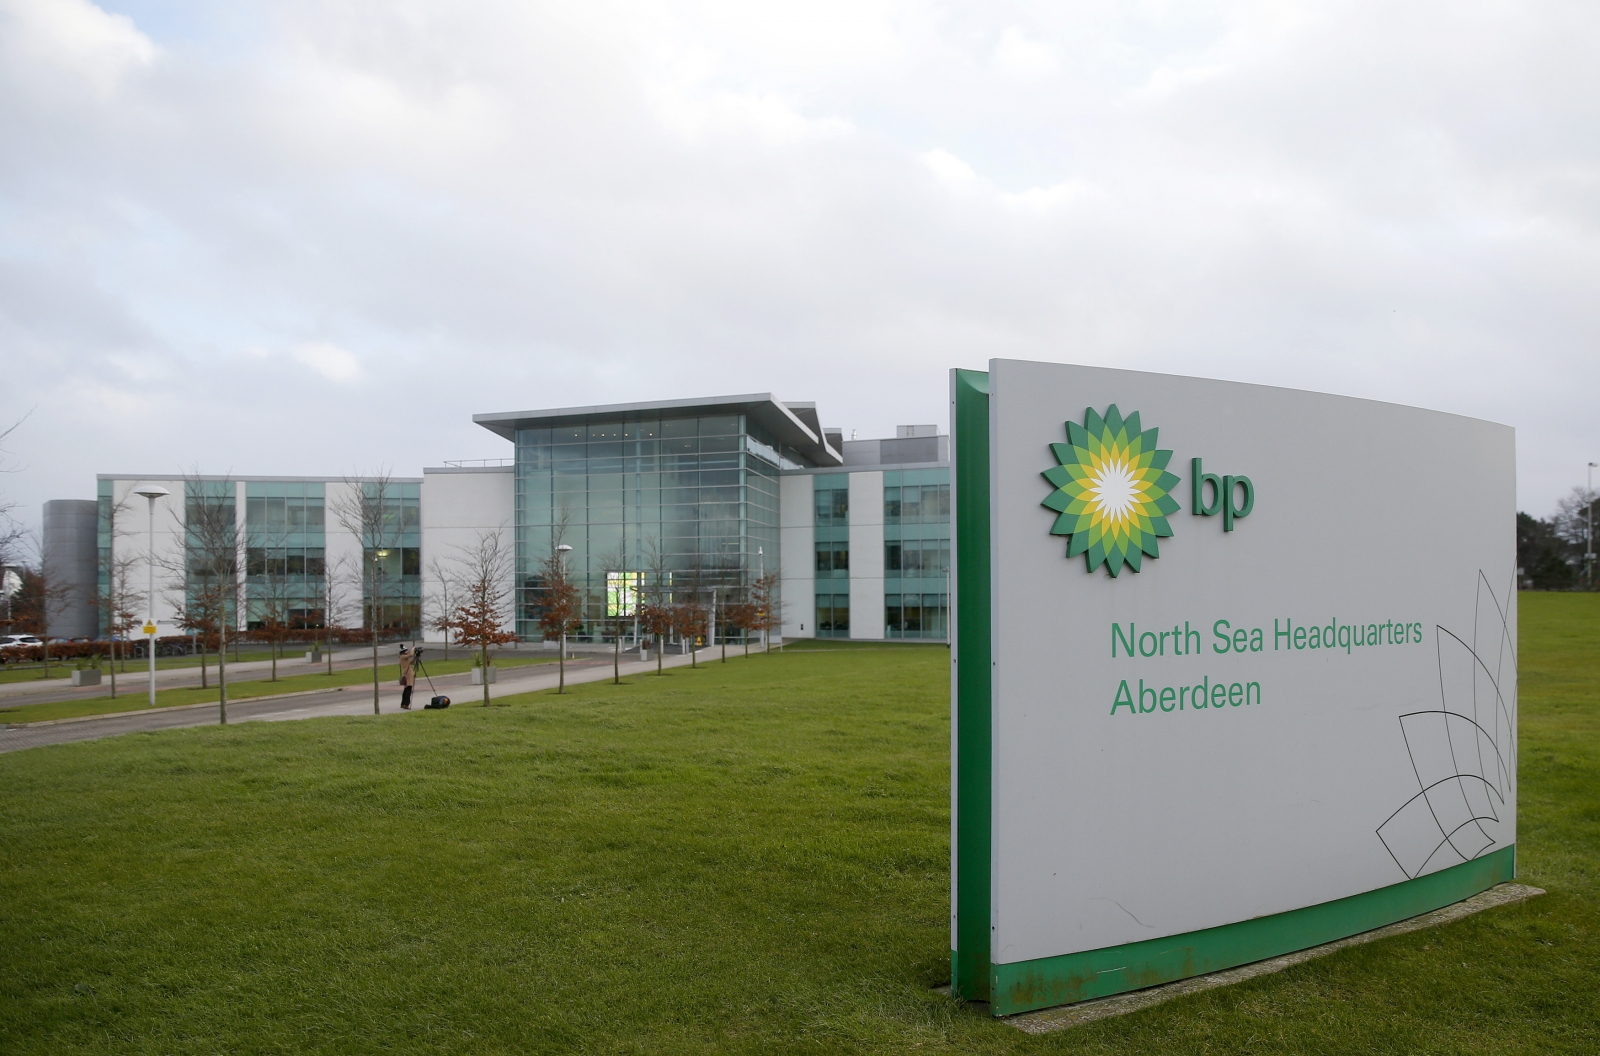 BP's North Sea Headquarters is seen in Aberdeen